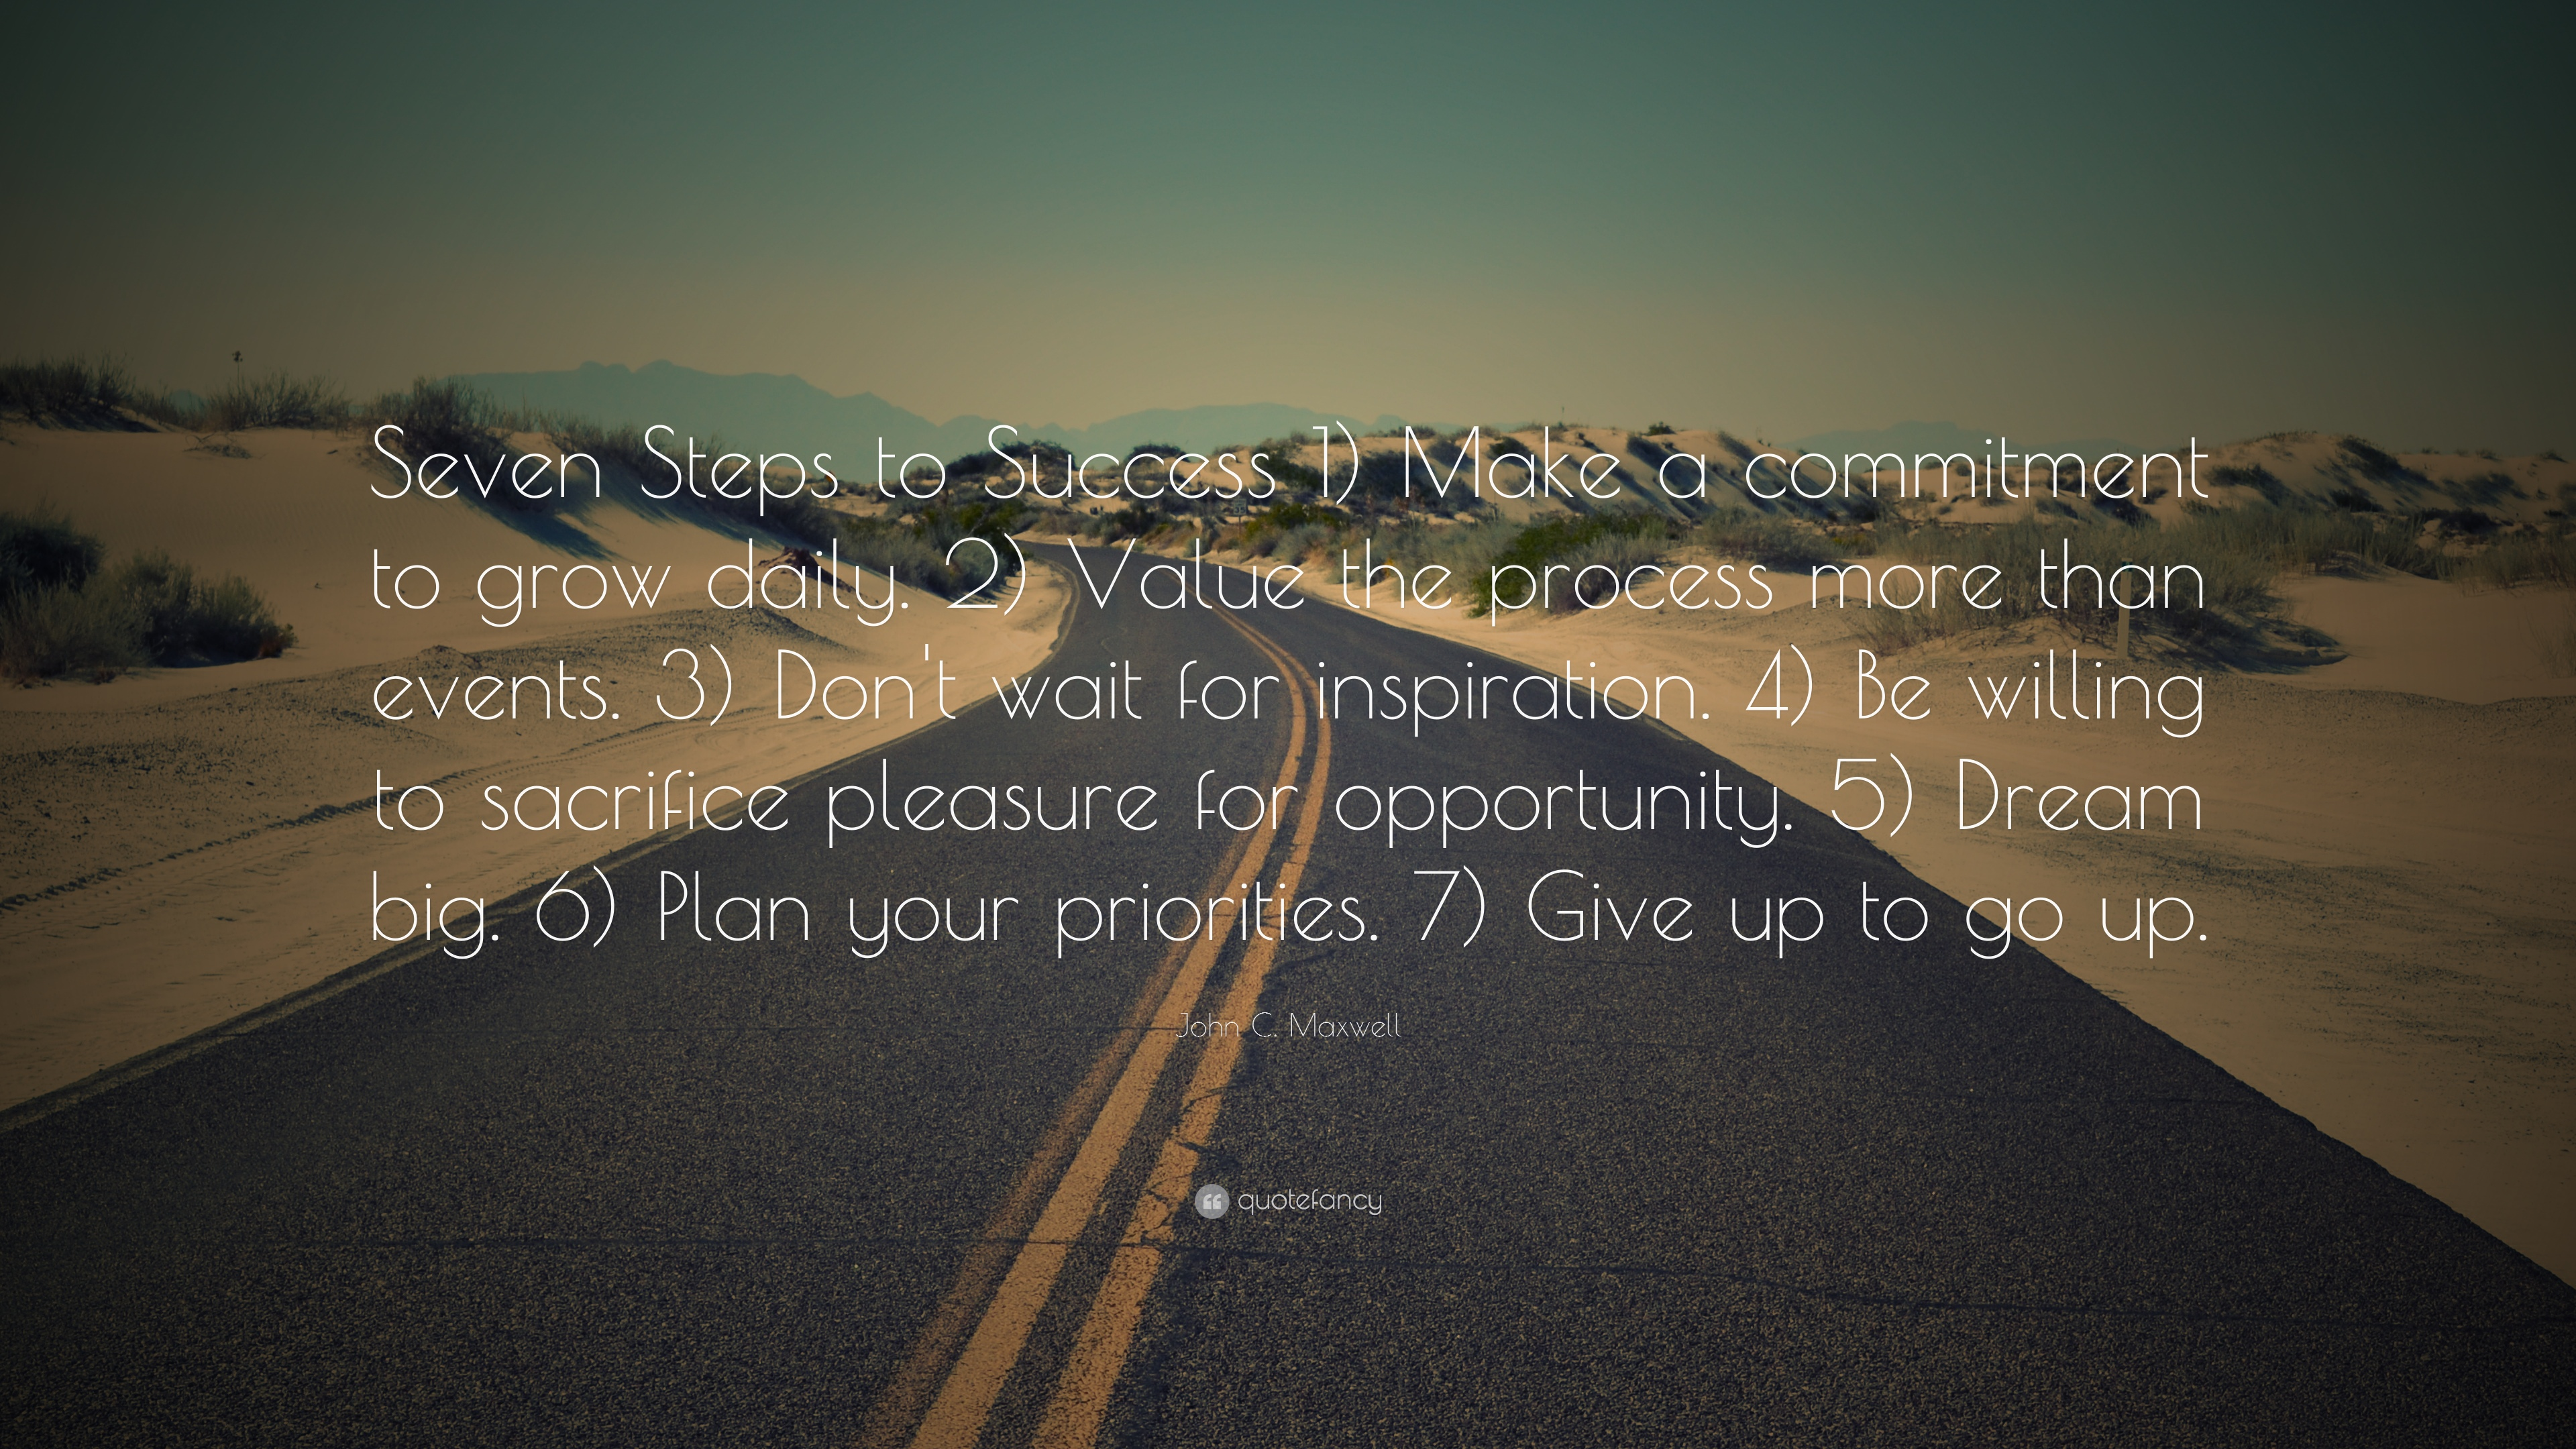 Motivational quotes dream quotes dream big quotes action quotes - John C Maxwell Quote Seven Steps To Success 1 Make A Commitment